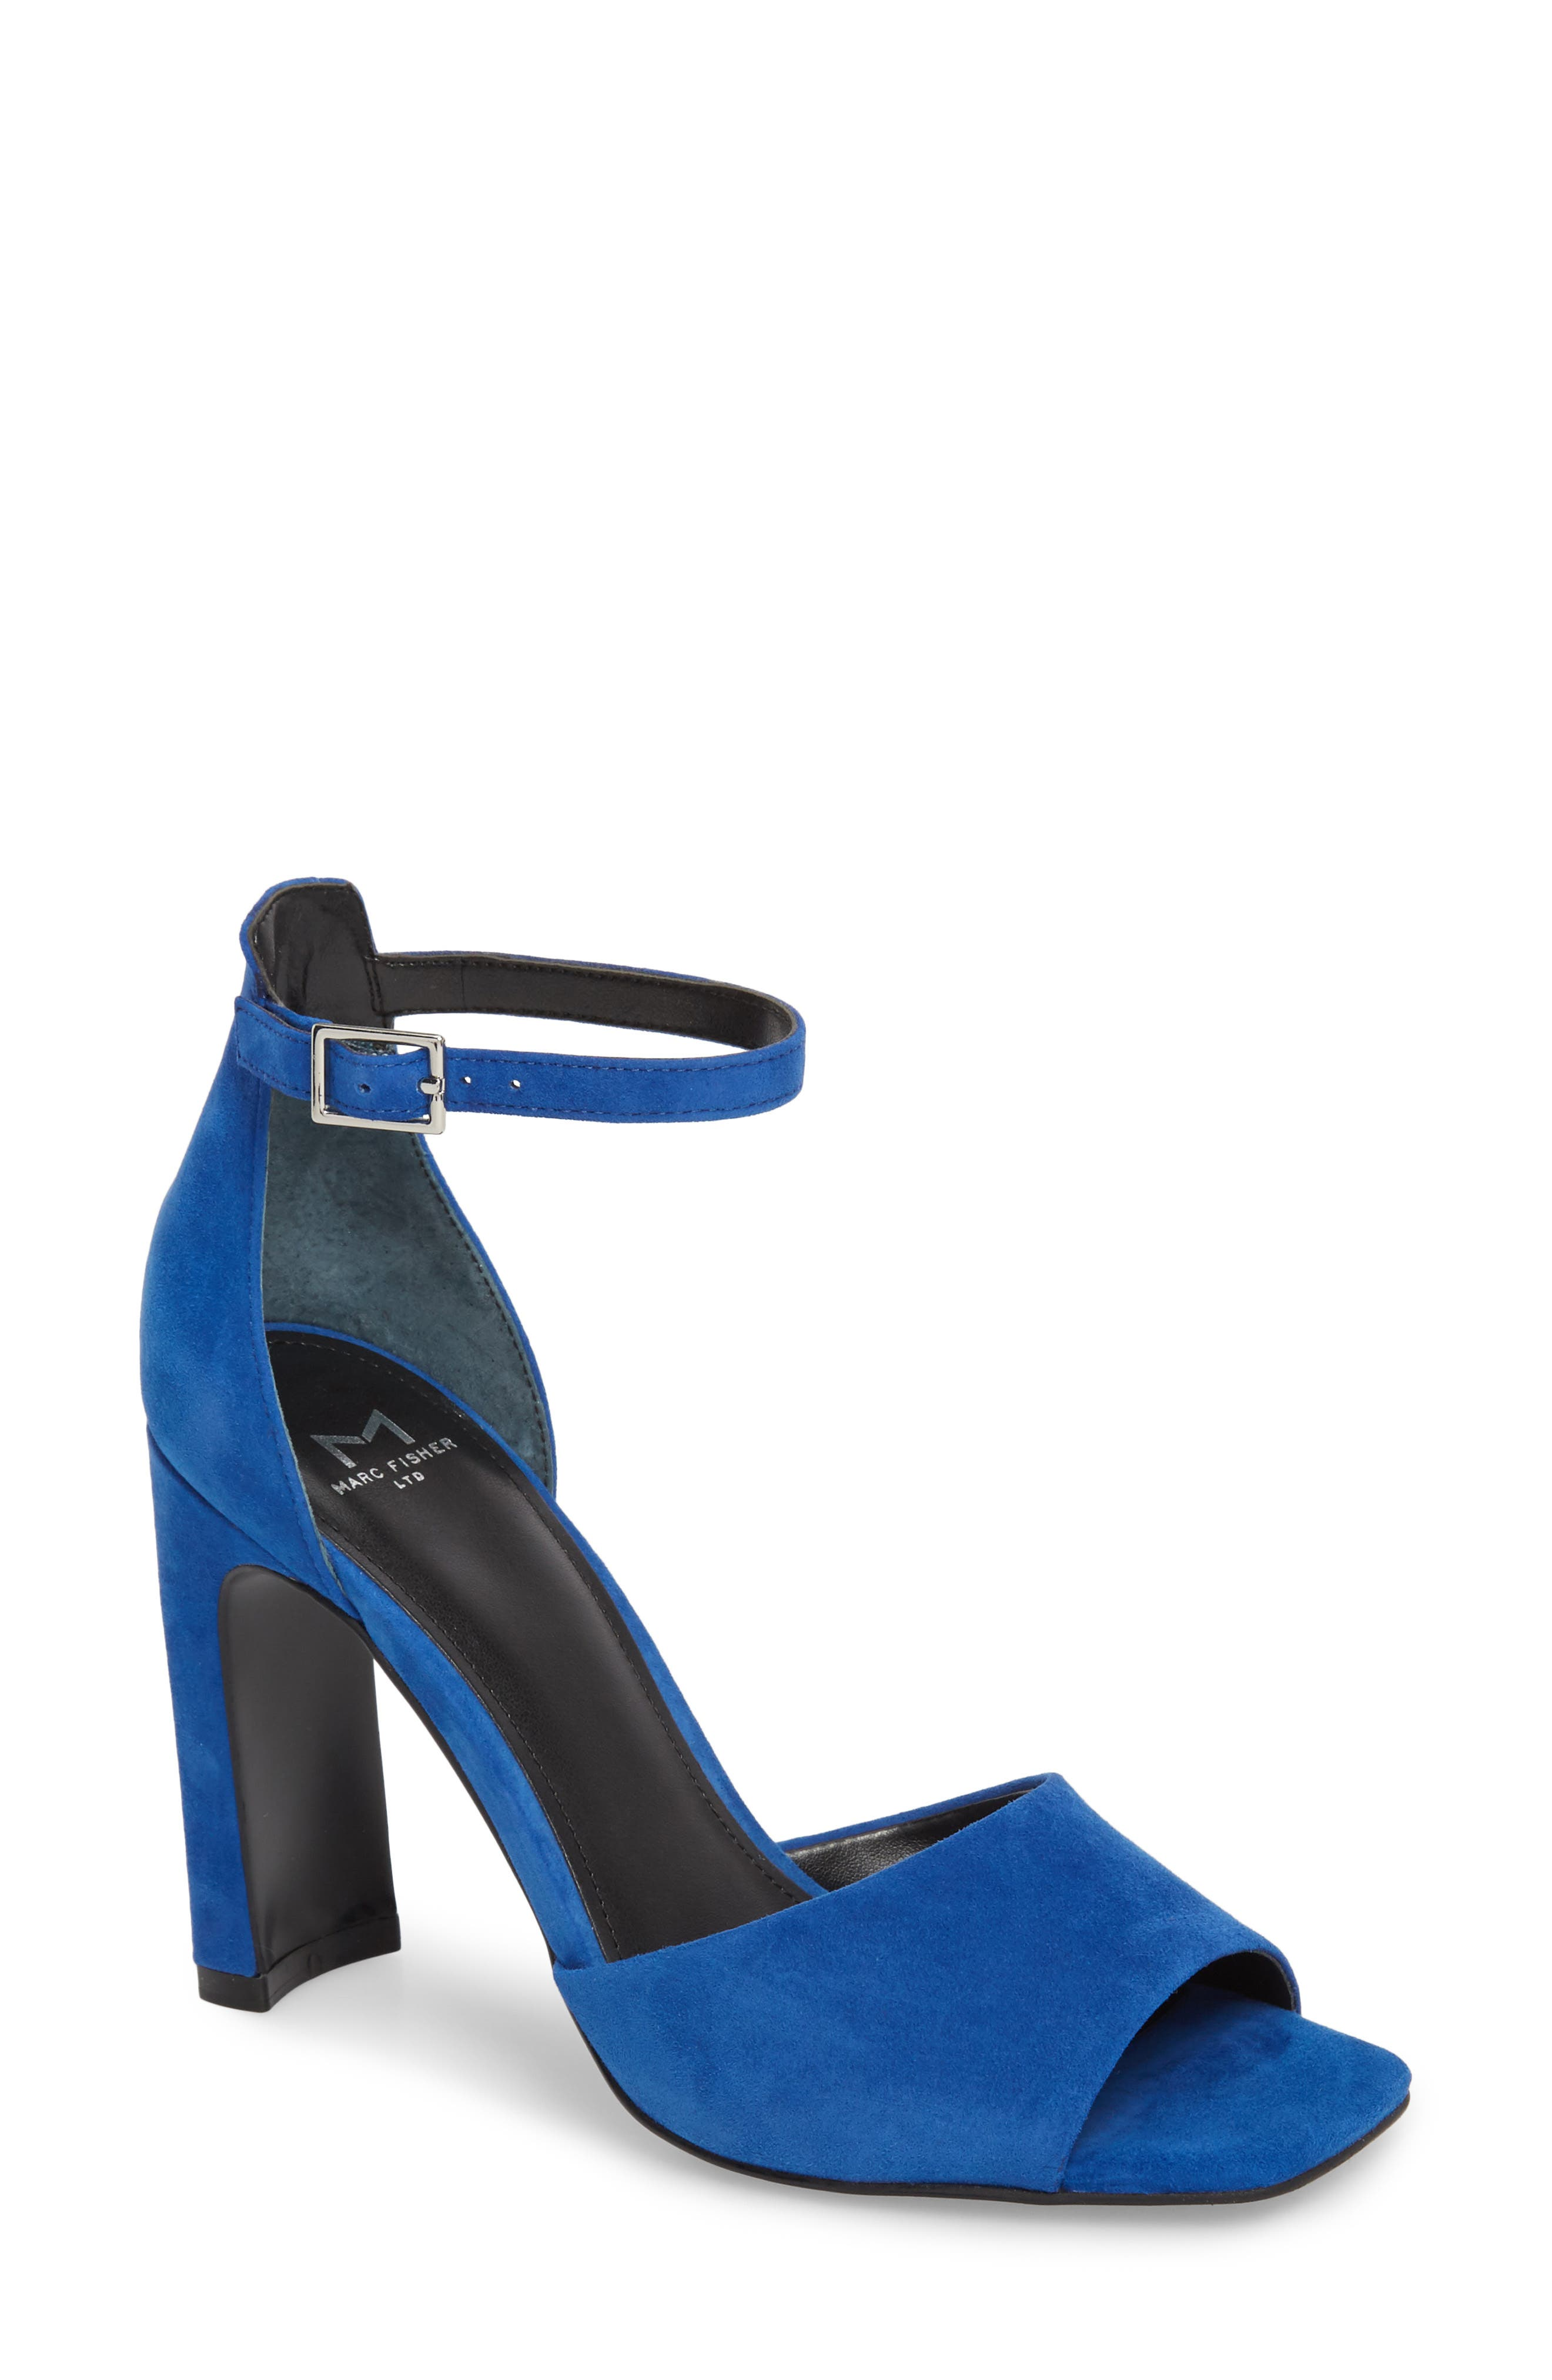 Harlin Ankle Strap Sandal,                         Main,                         color, BLUE SUEDE